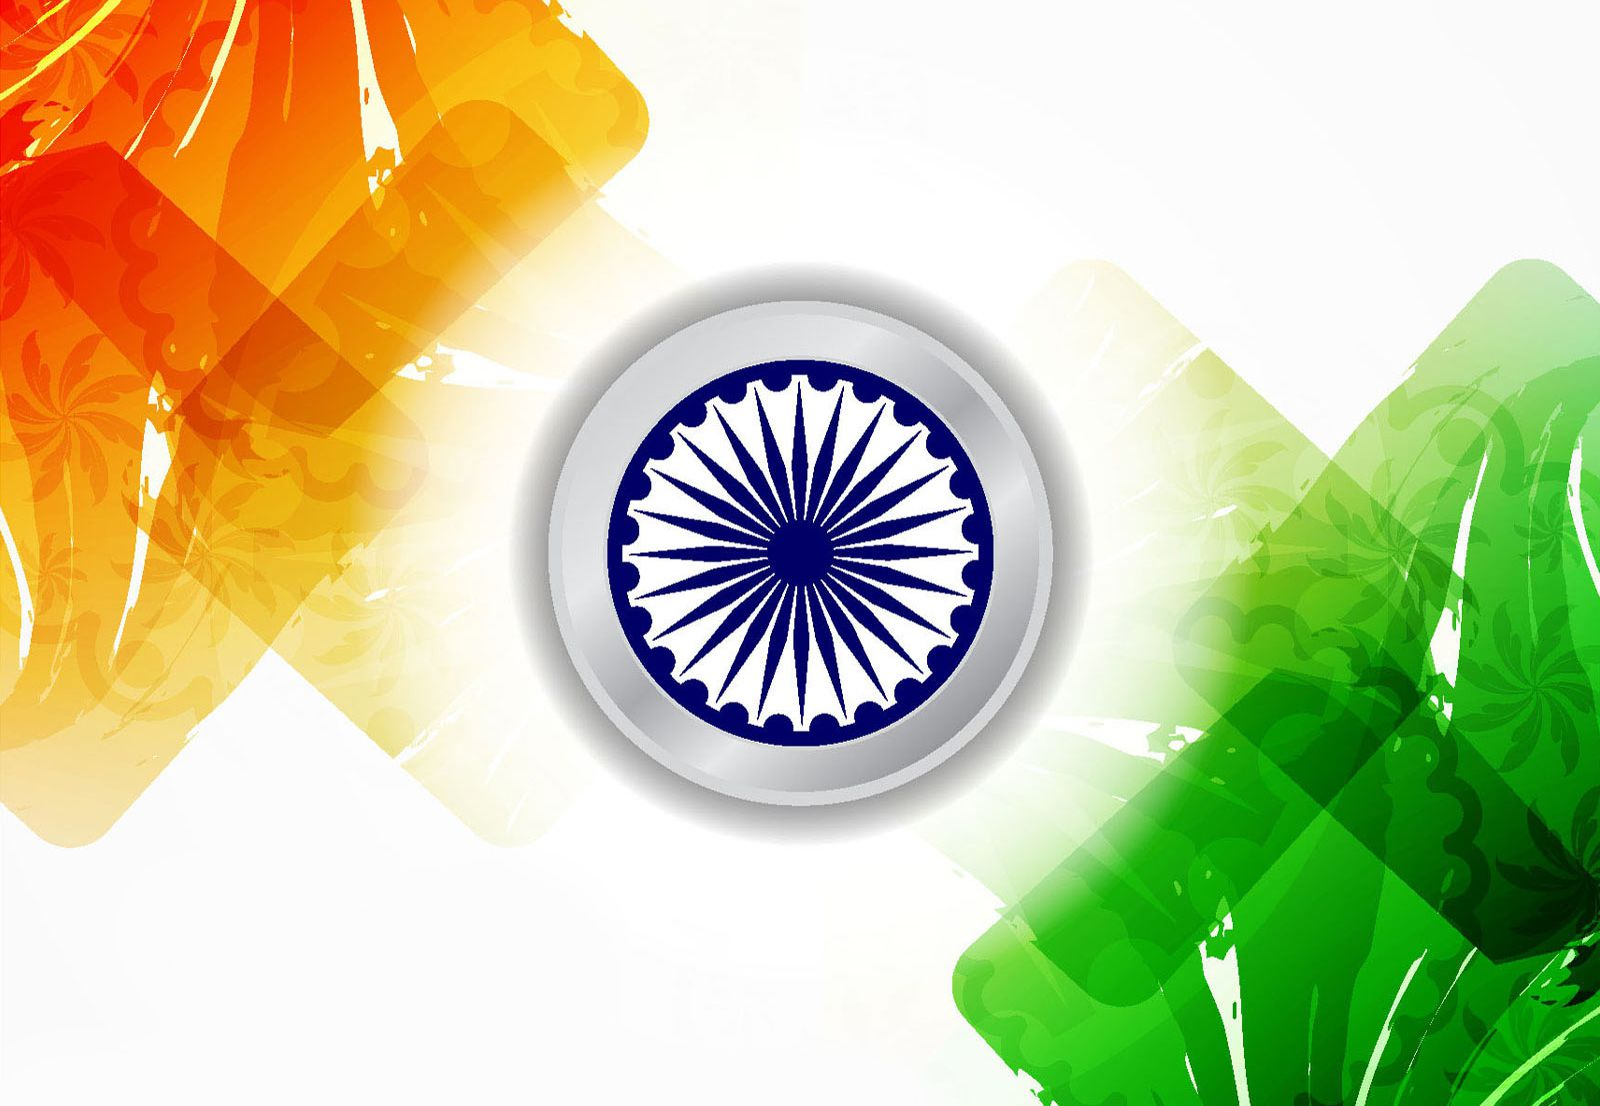 31 Patriotic Wallpapers Greetings Independence Day 2018 Image